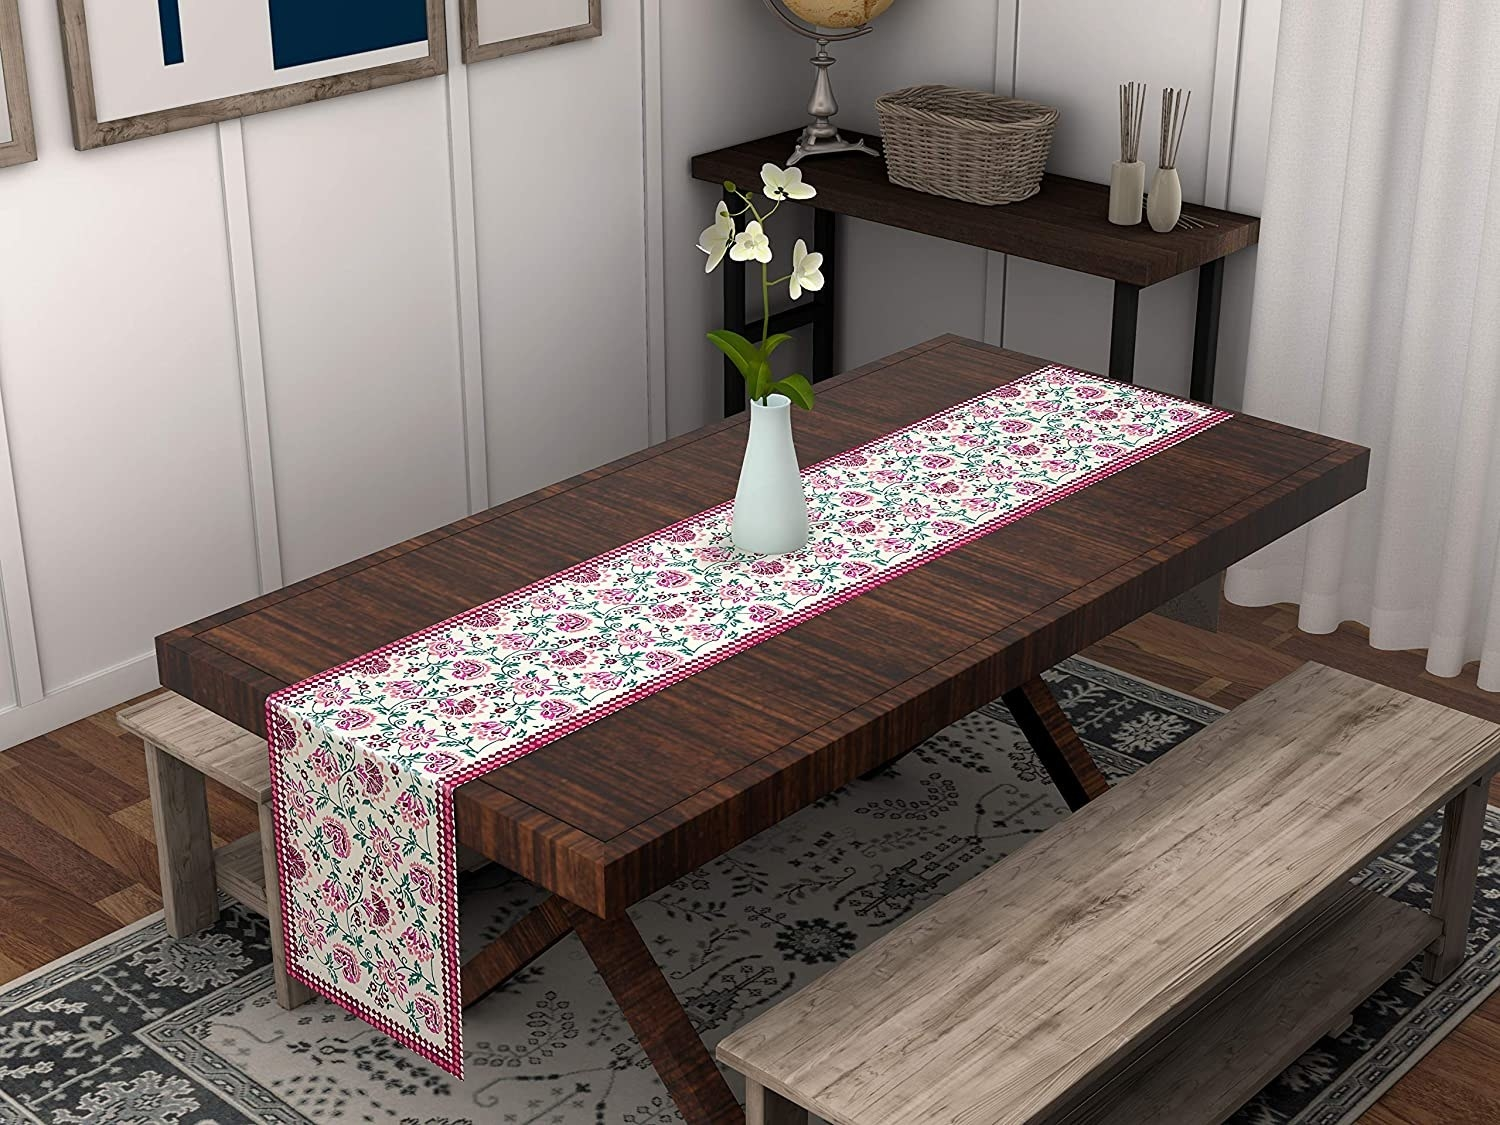 A white and pink table runner with flowers and leaves printed on it